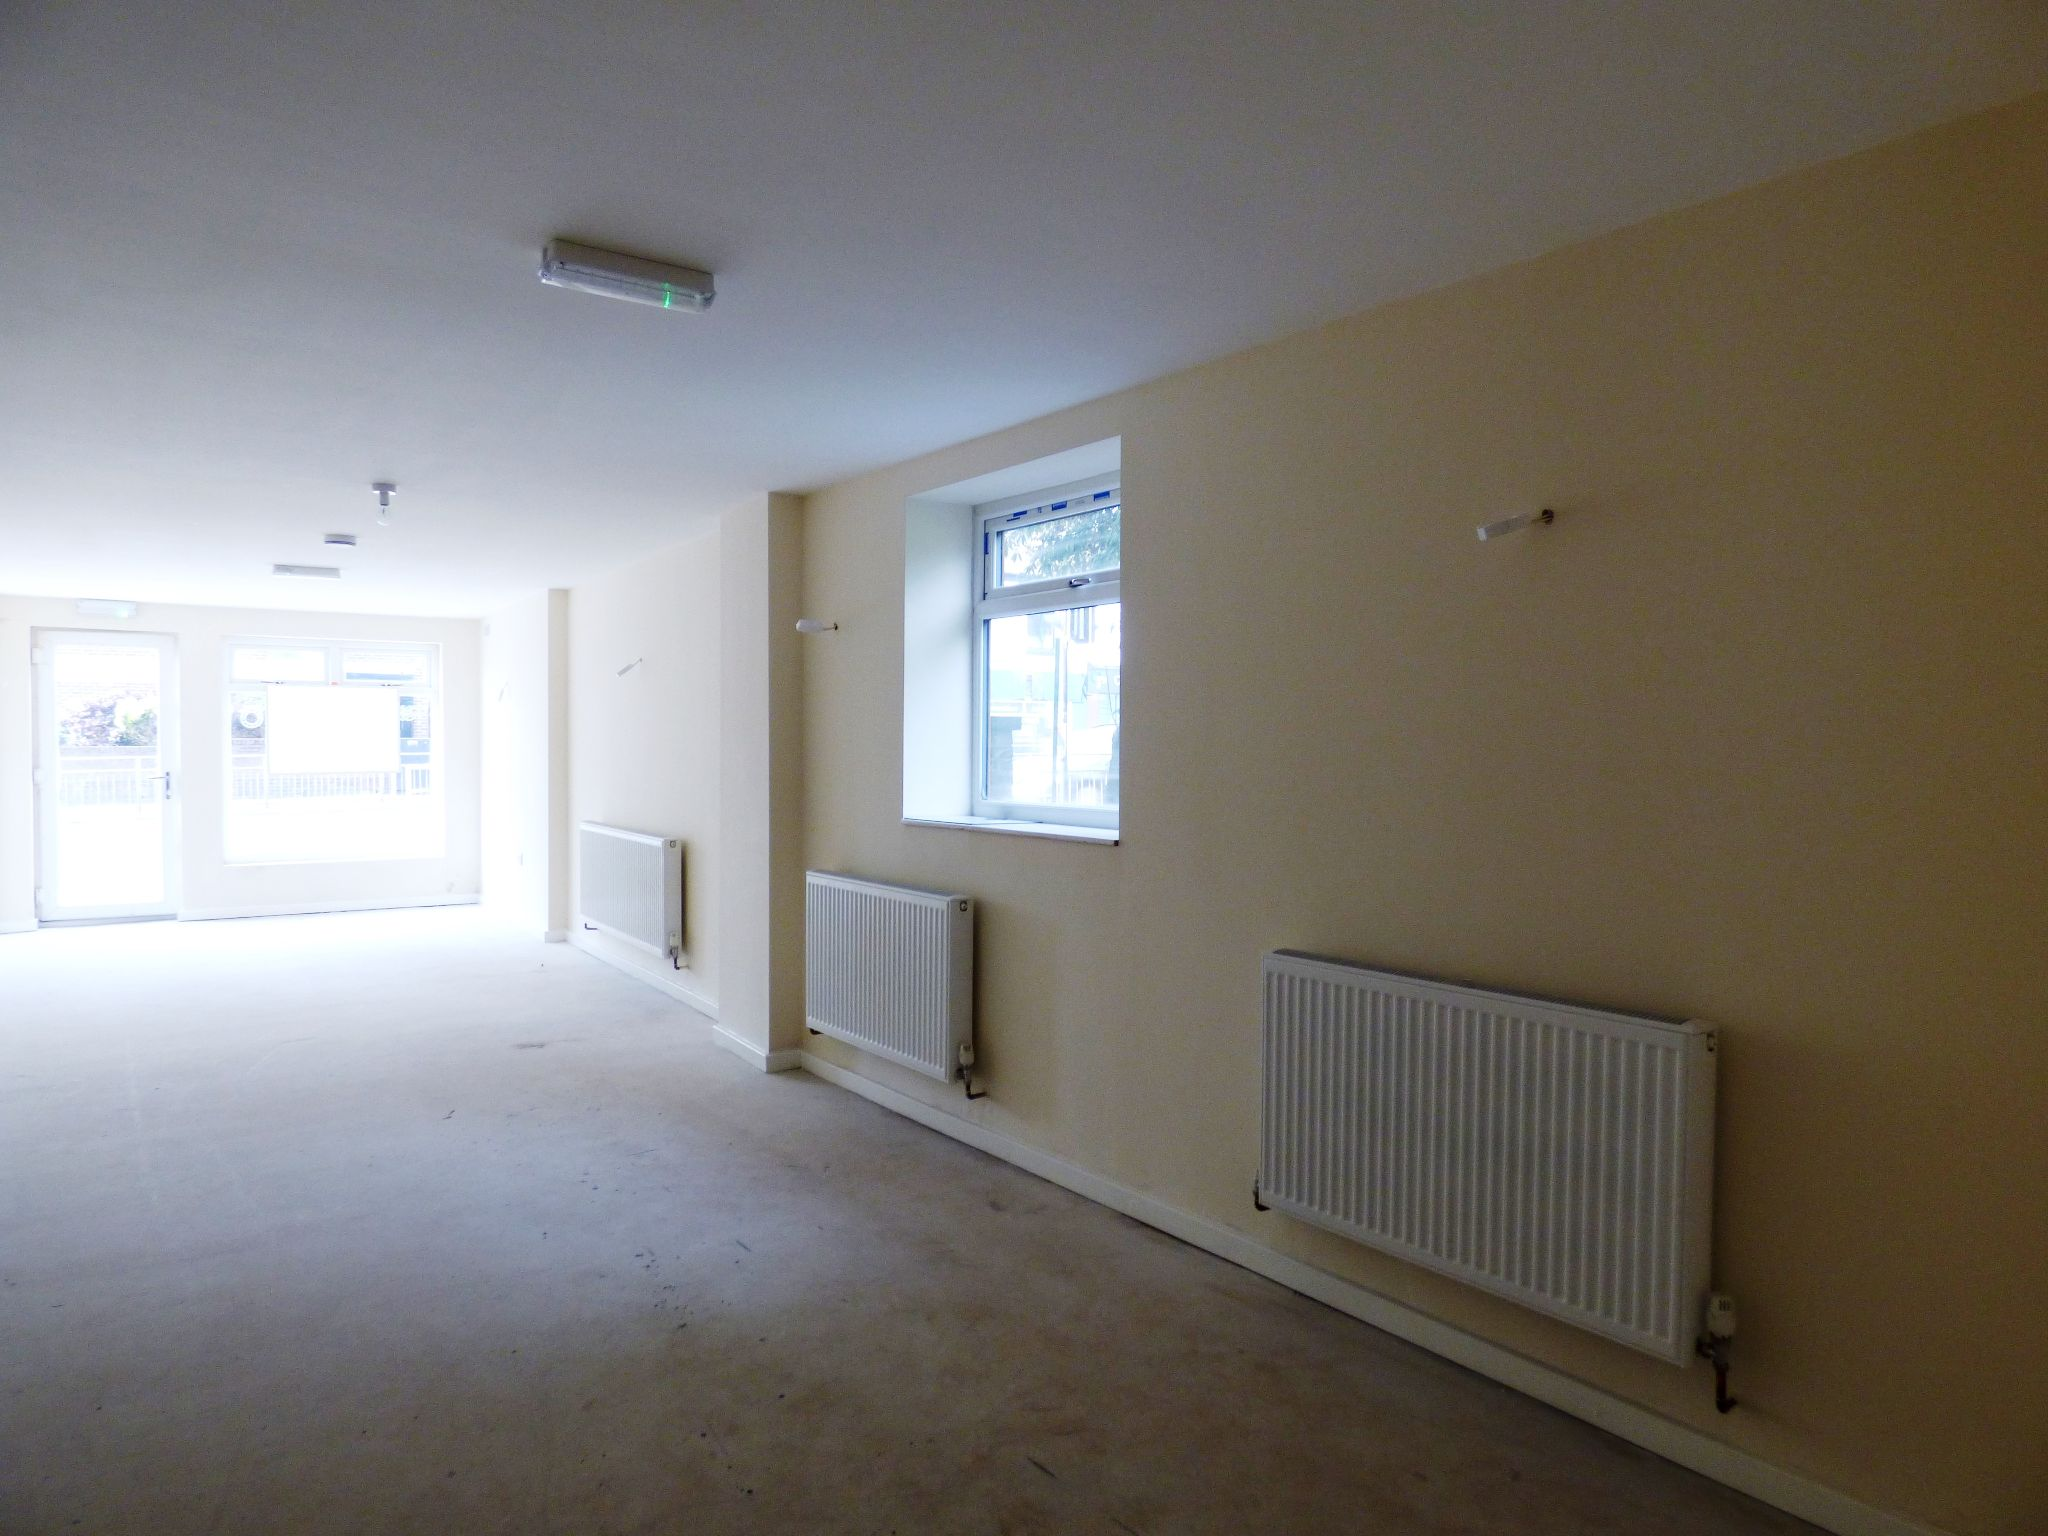 Commercial Property To Rent - Photograph 14